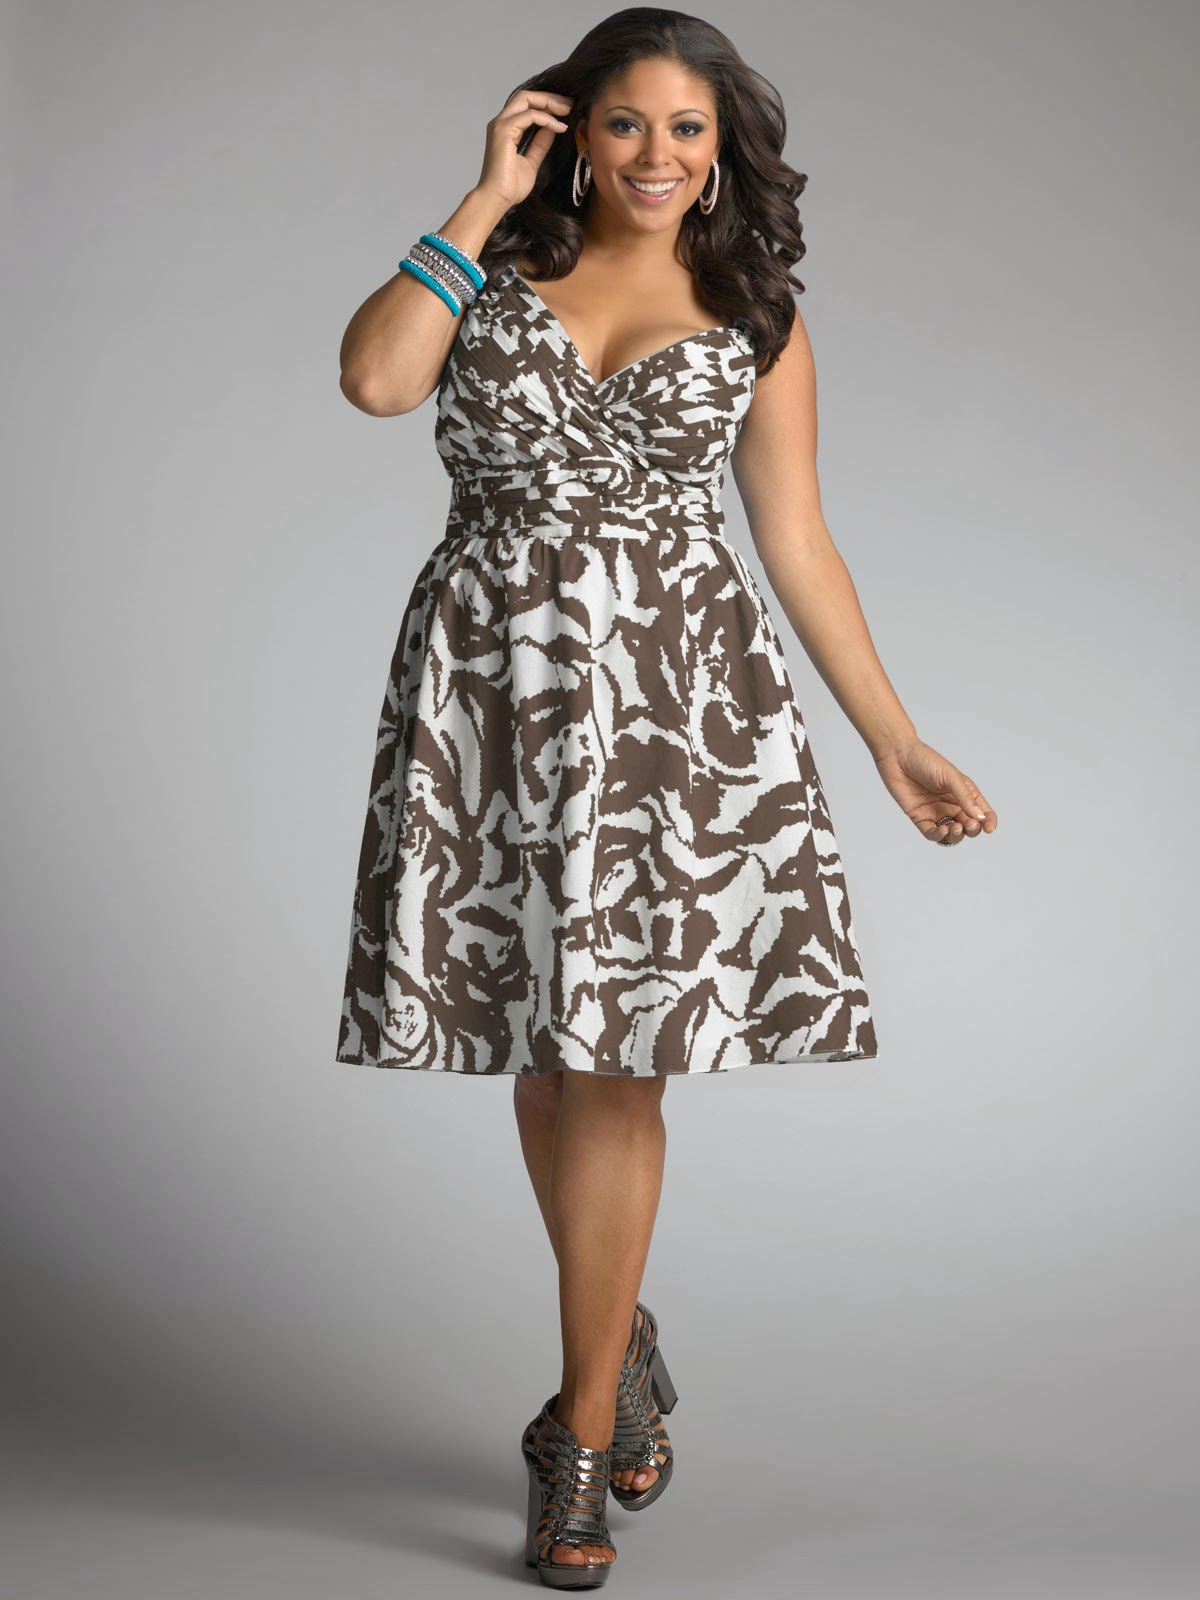 Beautiful Dresses For Healthy Women  Plus Size Dresses For Healthy Ladies